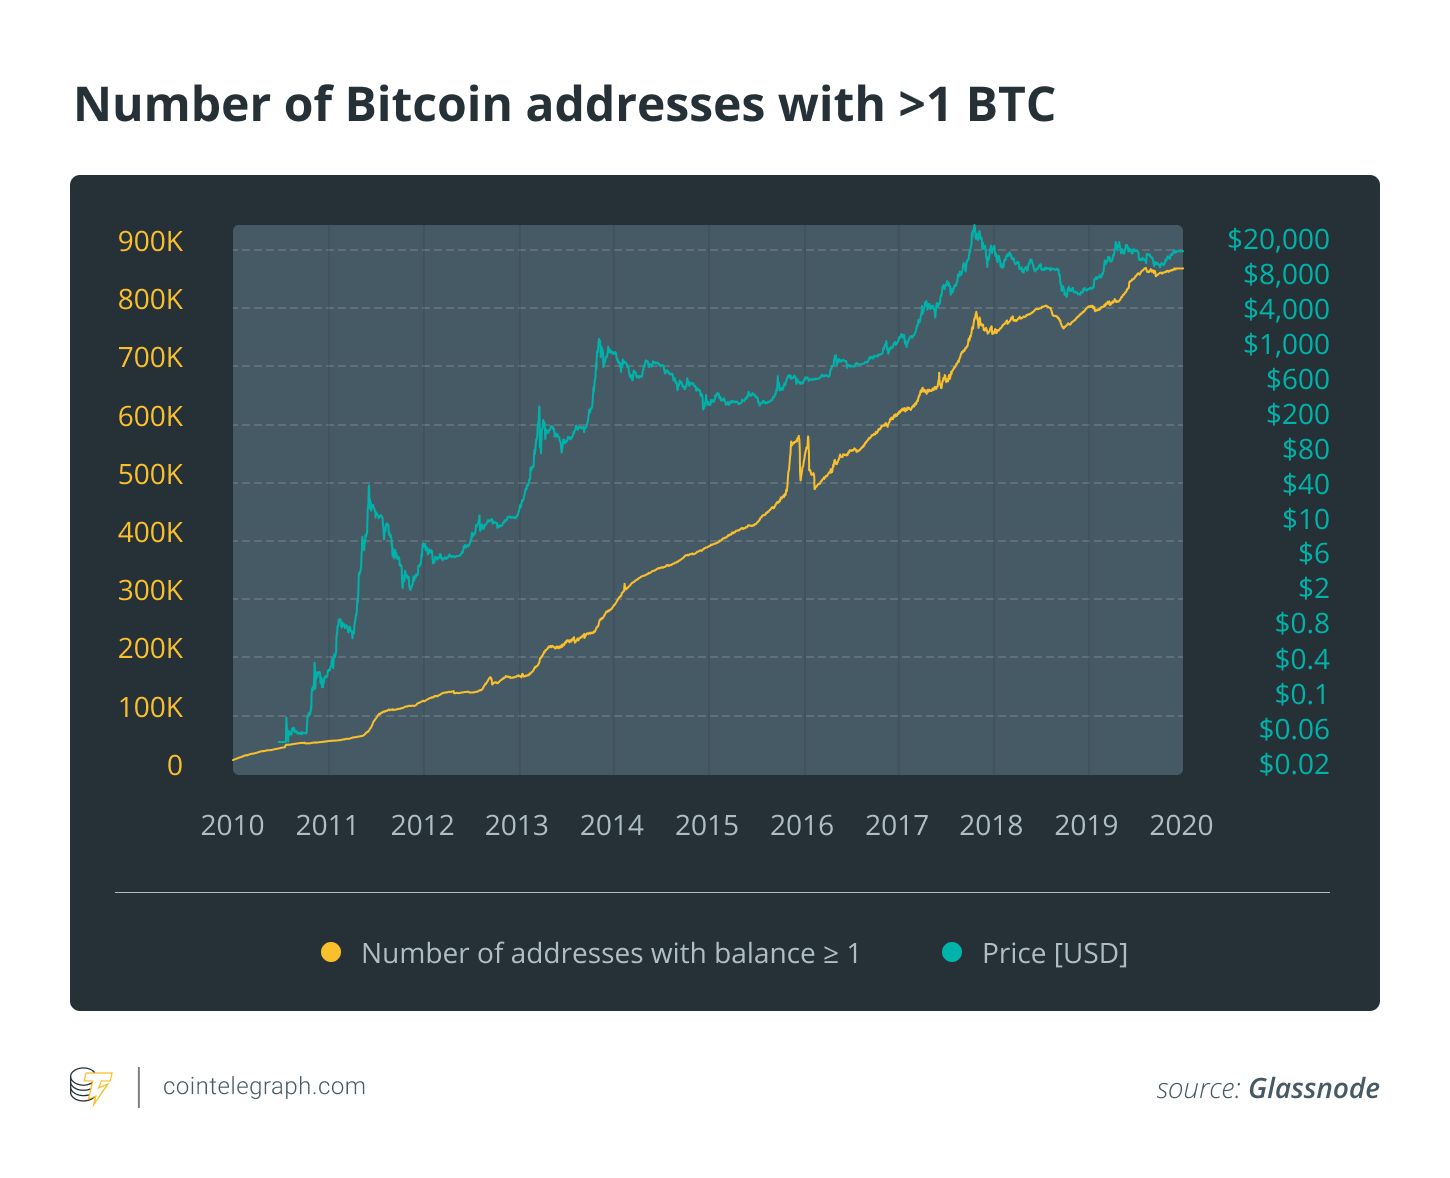 Number of Bitcoin addresses with >1 BTC